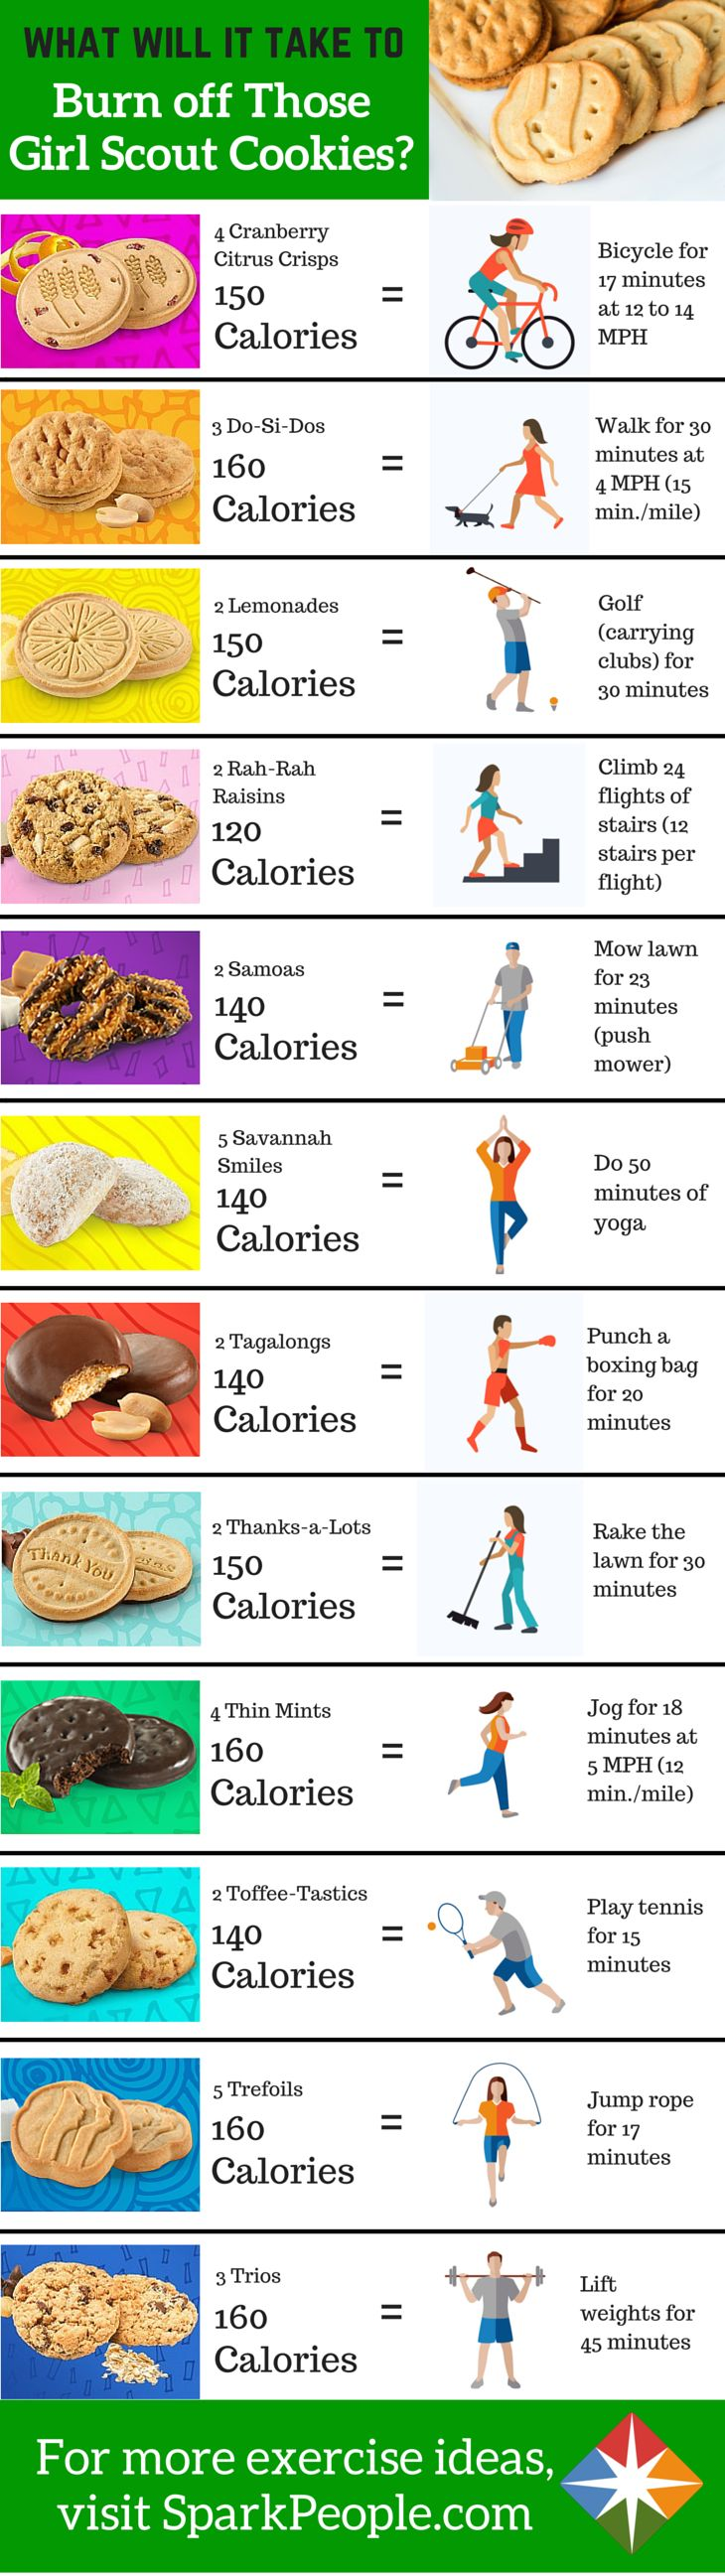 Earn Brownie Points for Smart Snacking: Girl Scout Calorie Counts